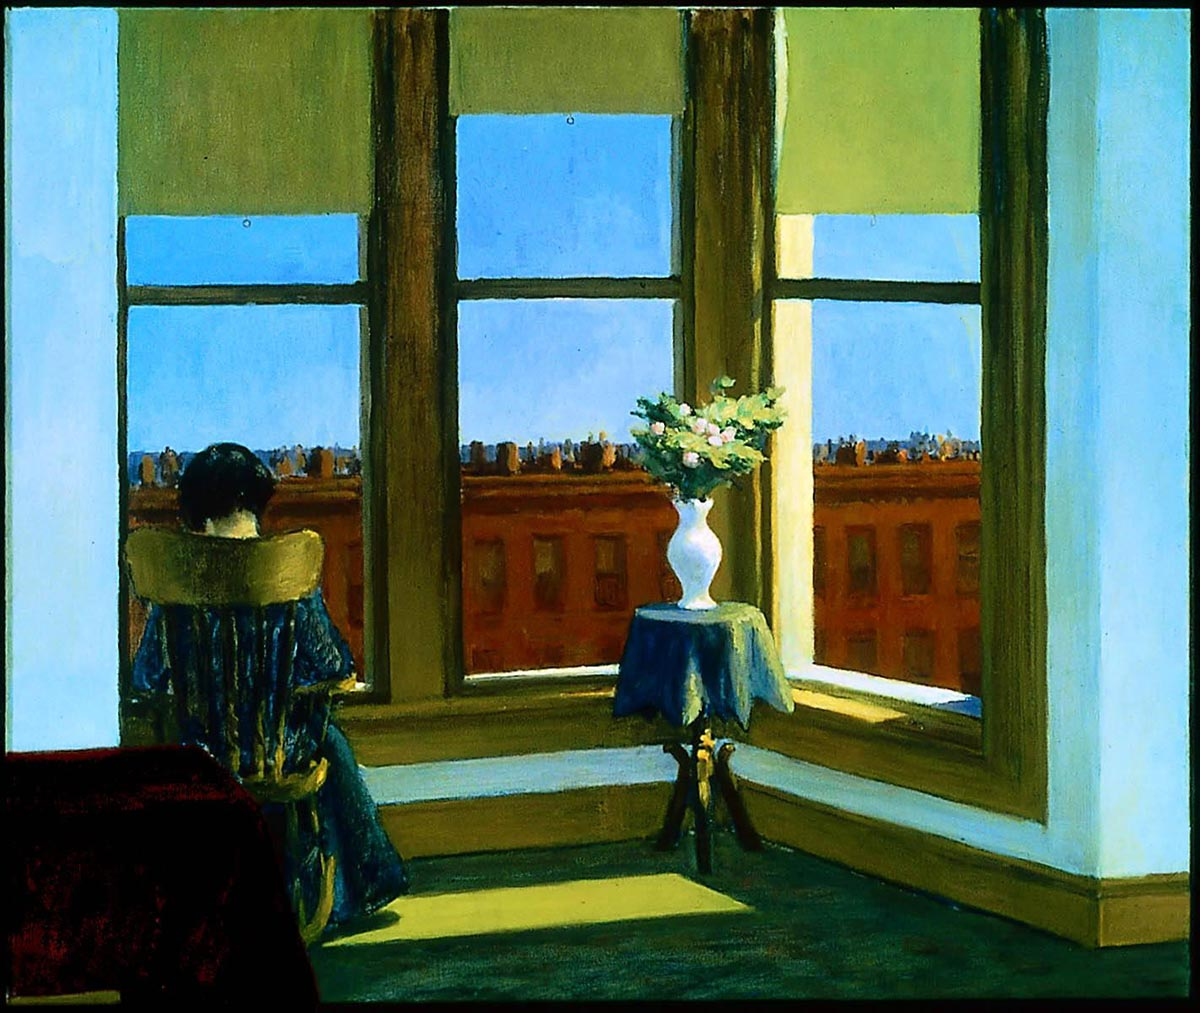 http://markjwallis.files.wordpress.com/2012/02/edward-hopper-room-in-brooklyn-1932-painting-artwork-print.jpg